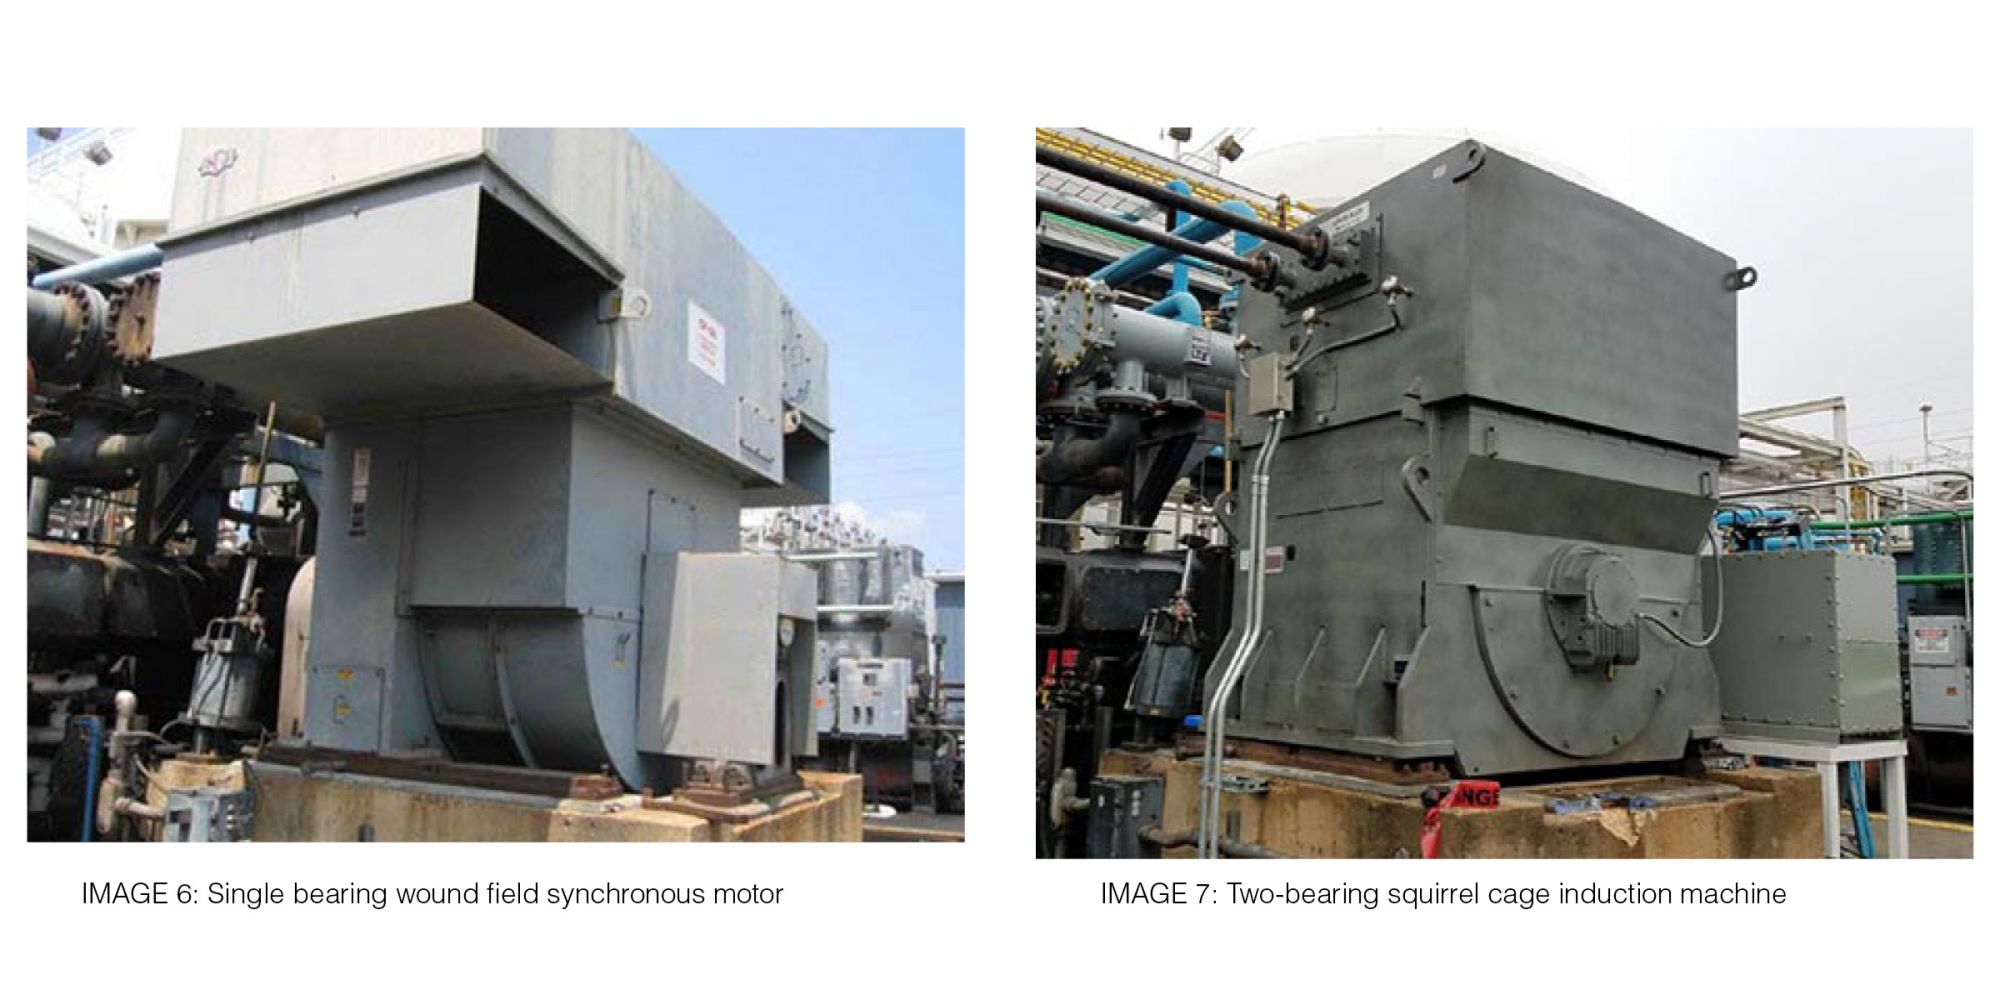 IMAGE 6: Single bearing wound field  synchronous motor and IMAGE 7: Two-bearing squirrel cage induction machine